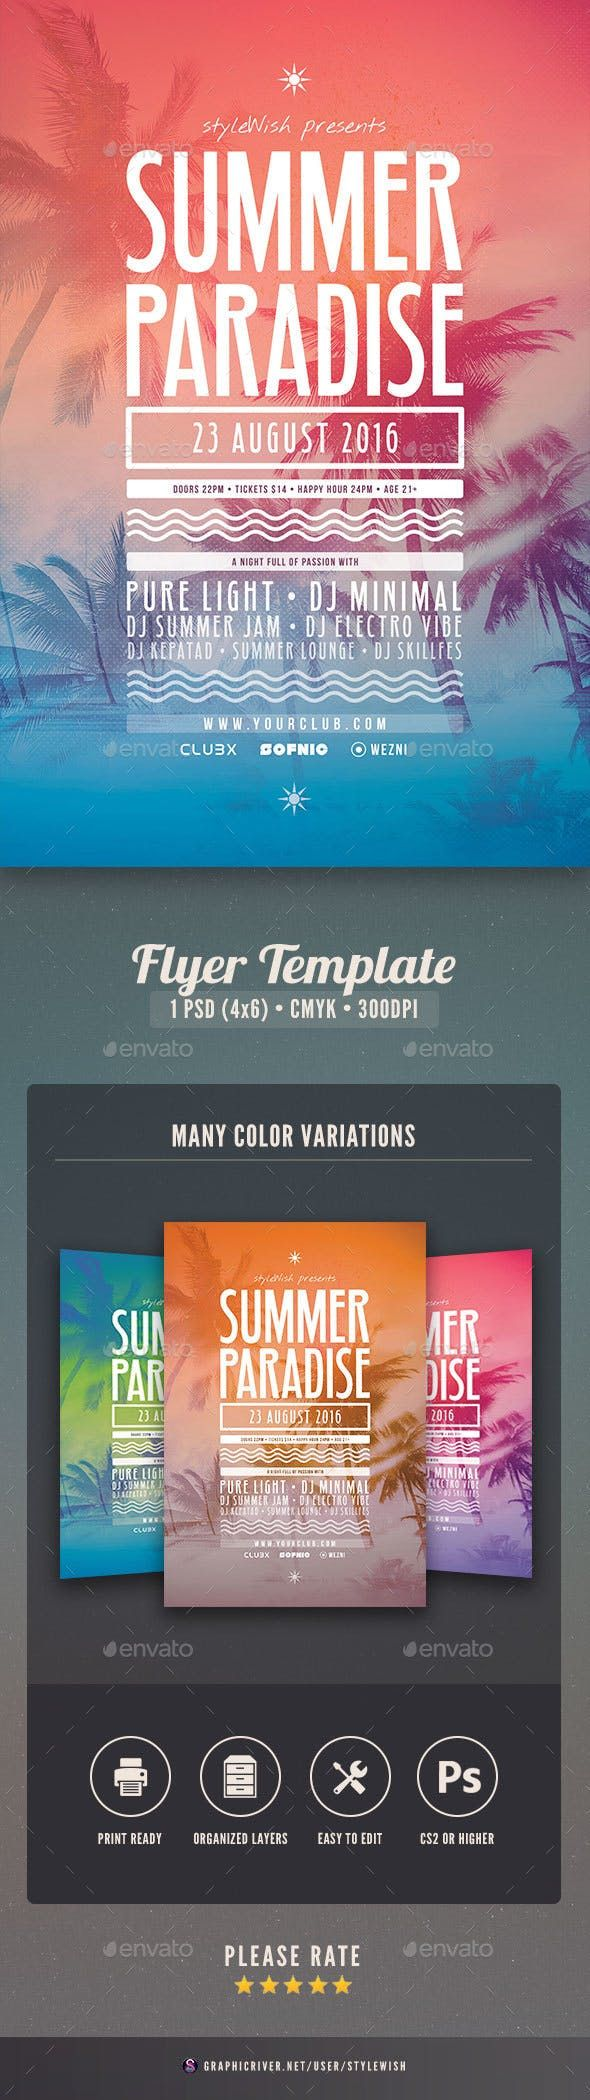 Photo of Summer Paradise Flyer – Photoshop PSD #sea #warm